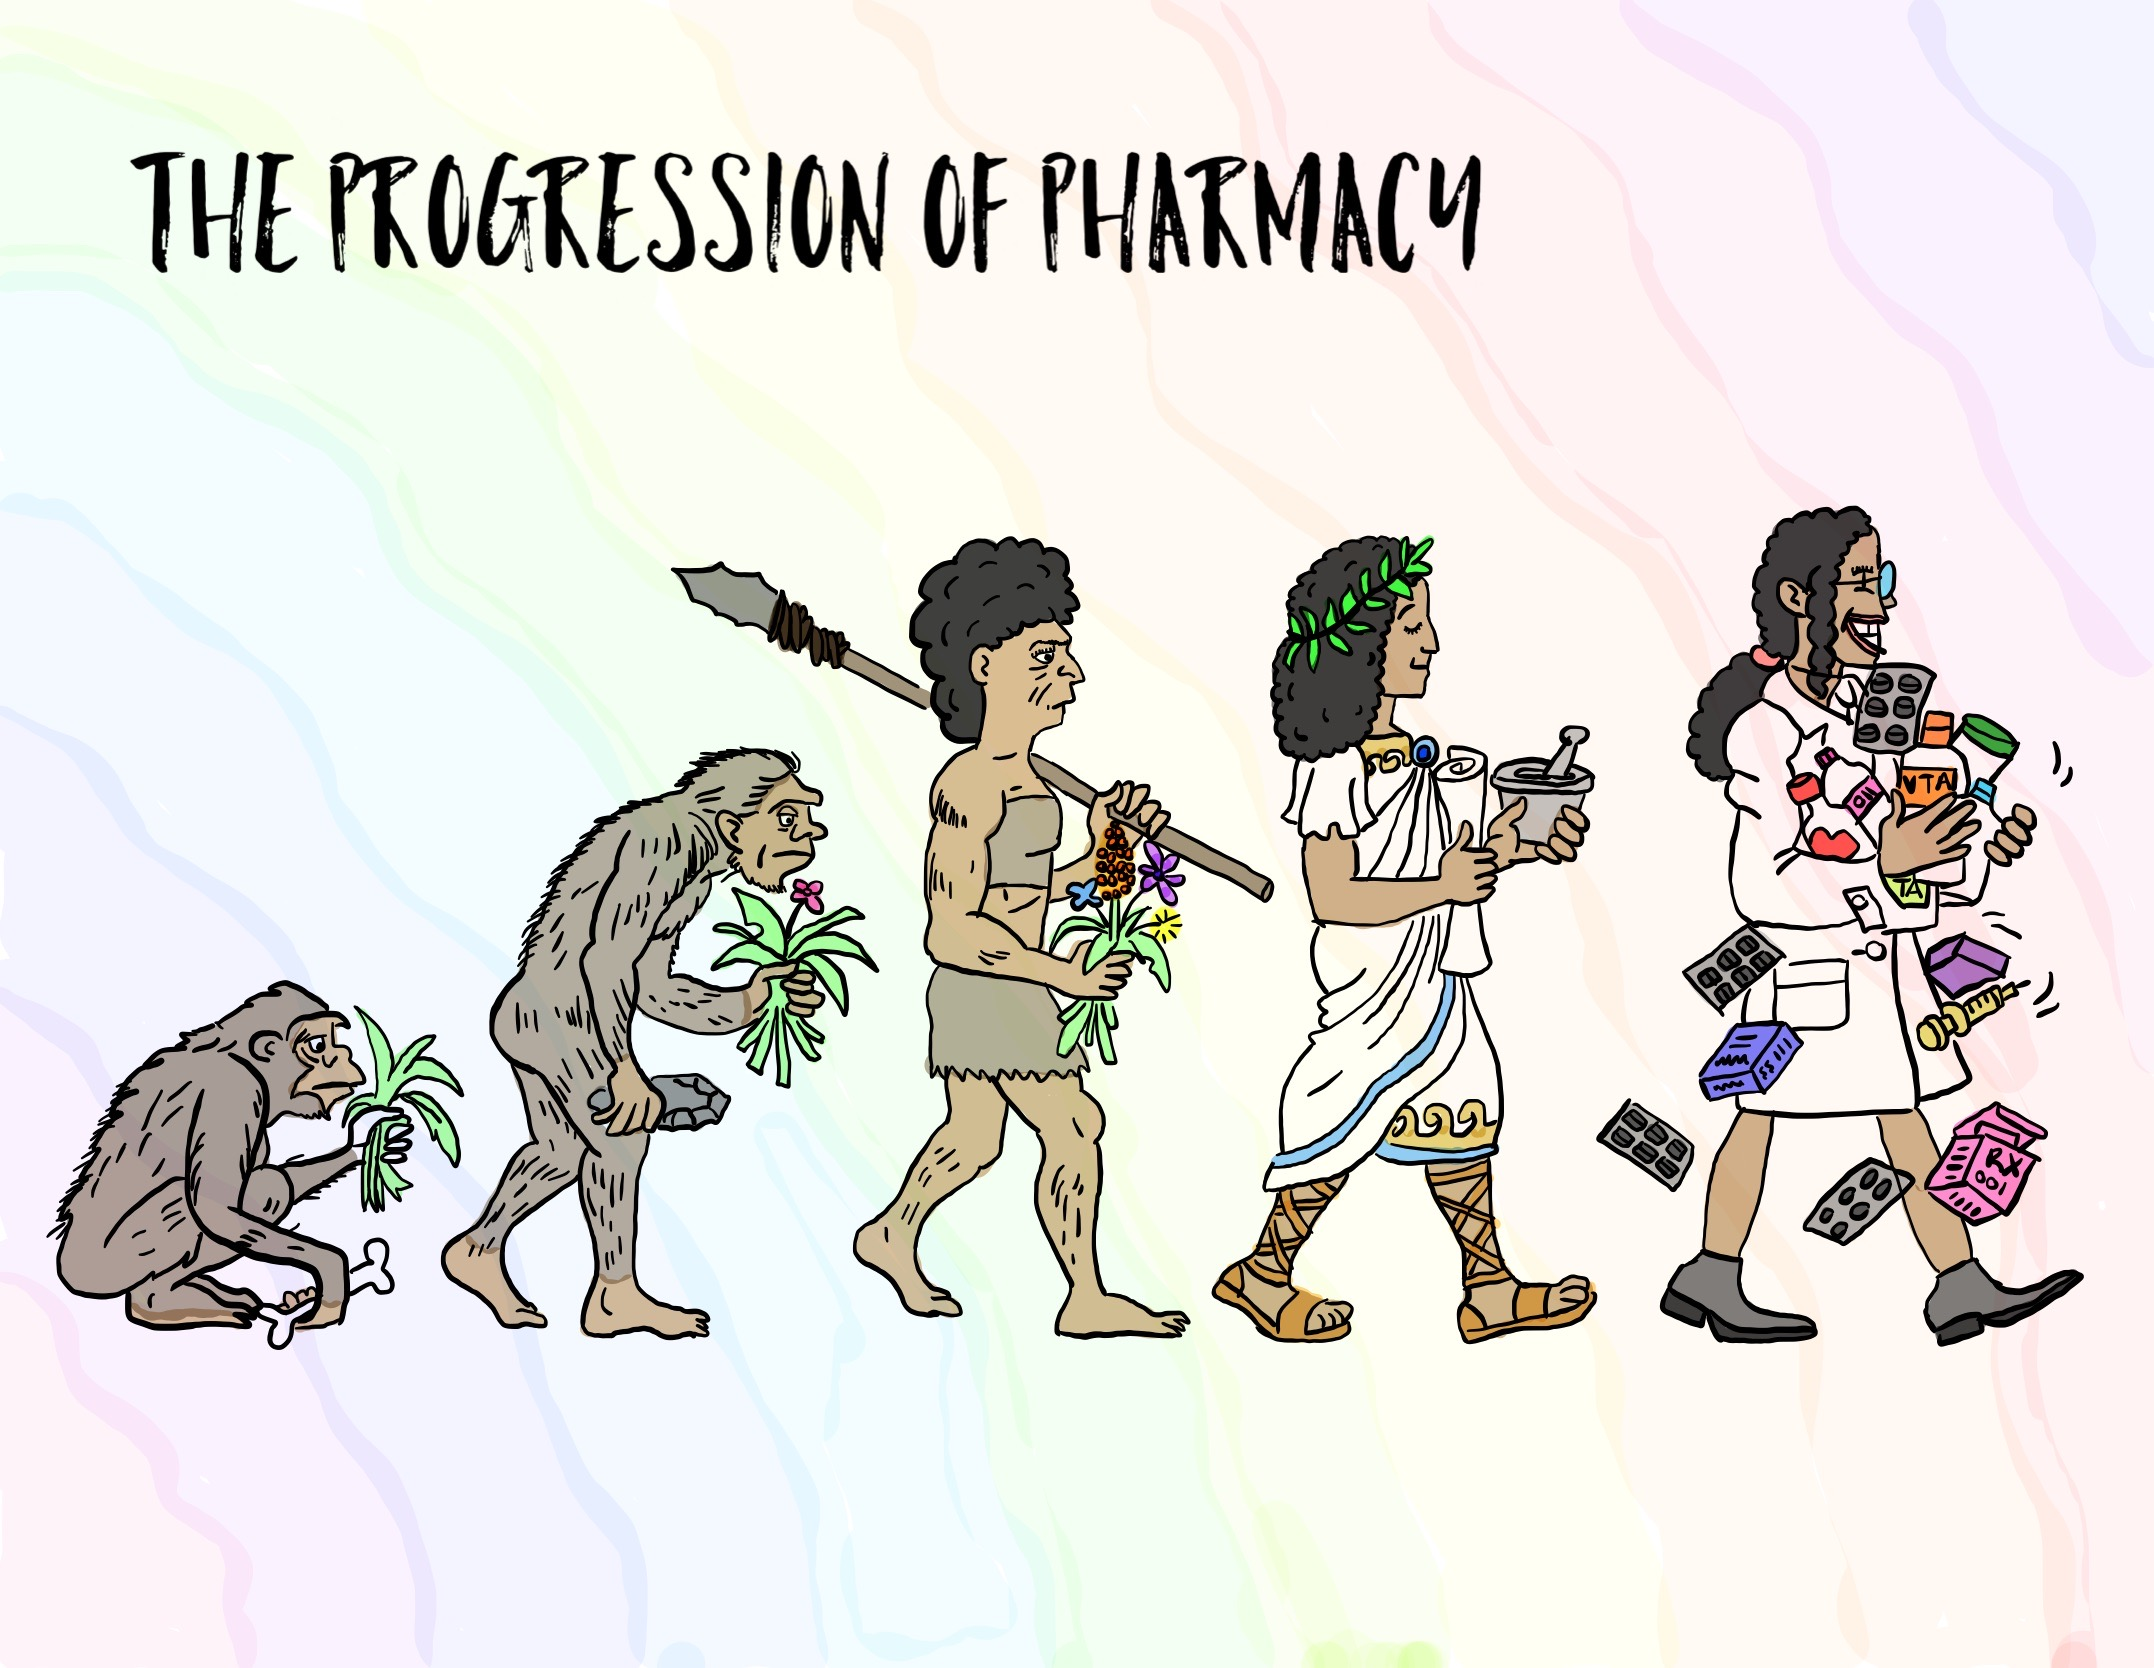 Evolution model withprogression of pharmacists